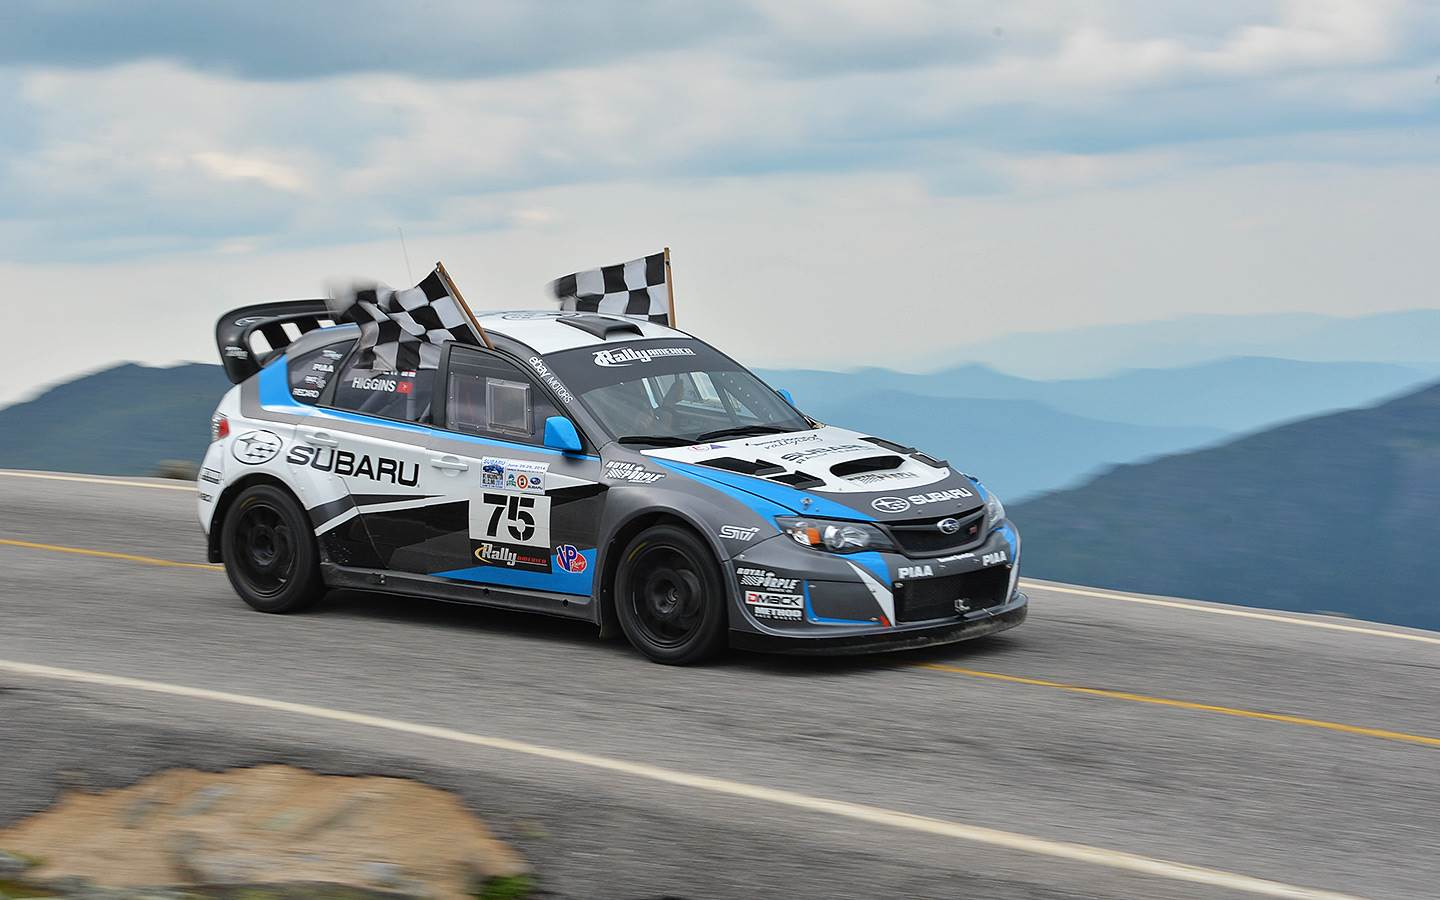 Wrx Sti Launch Control >> All We'll Drive: Higgins aims for Pikes Peak